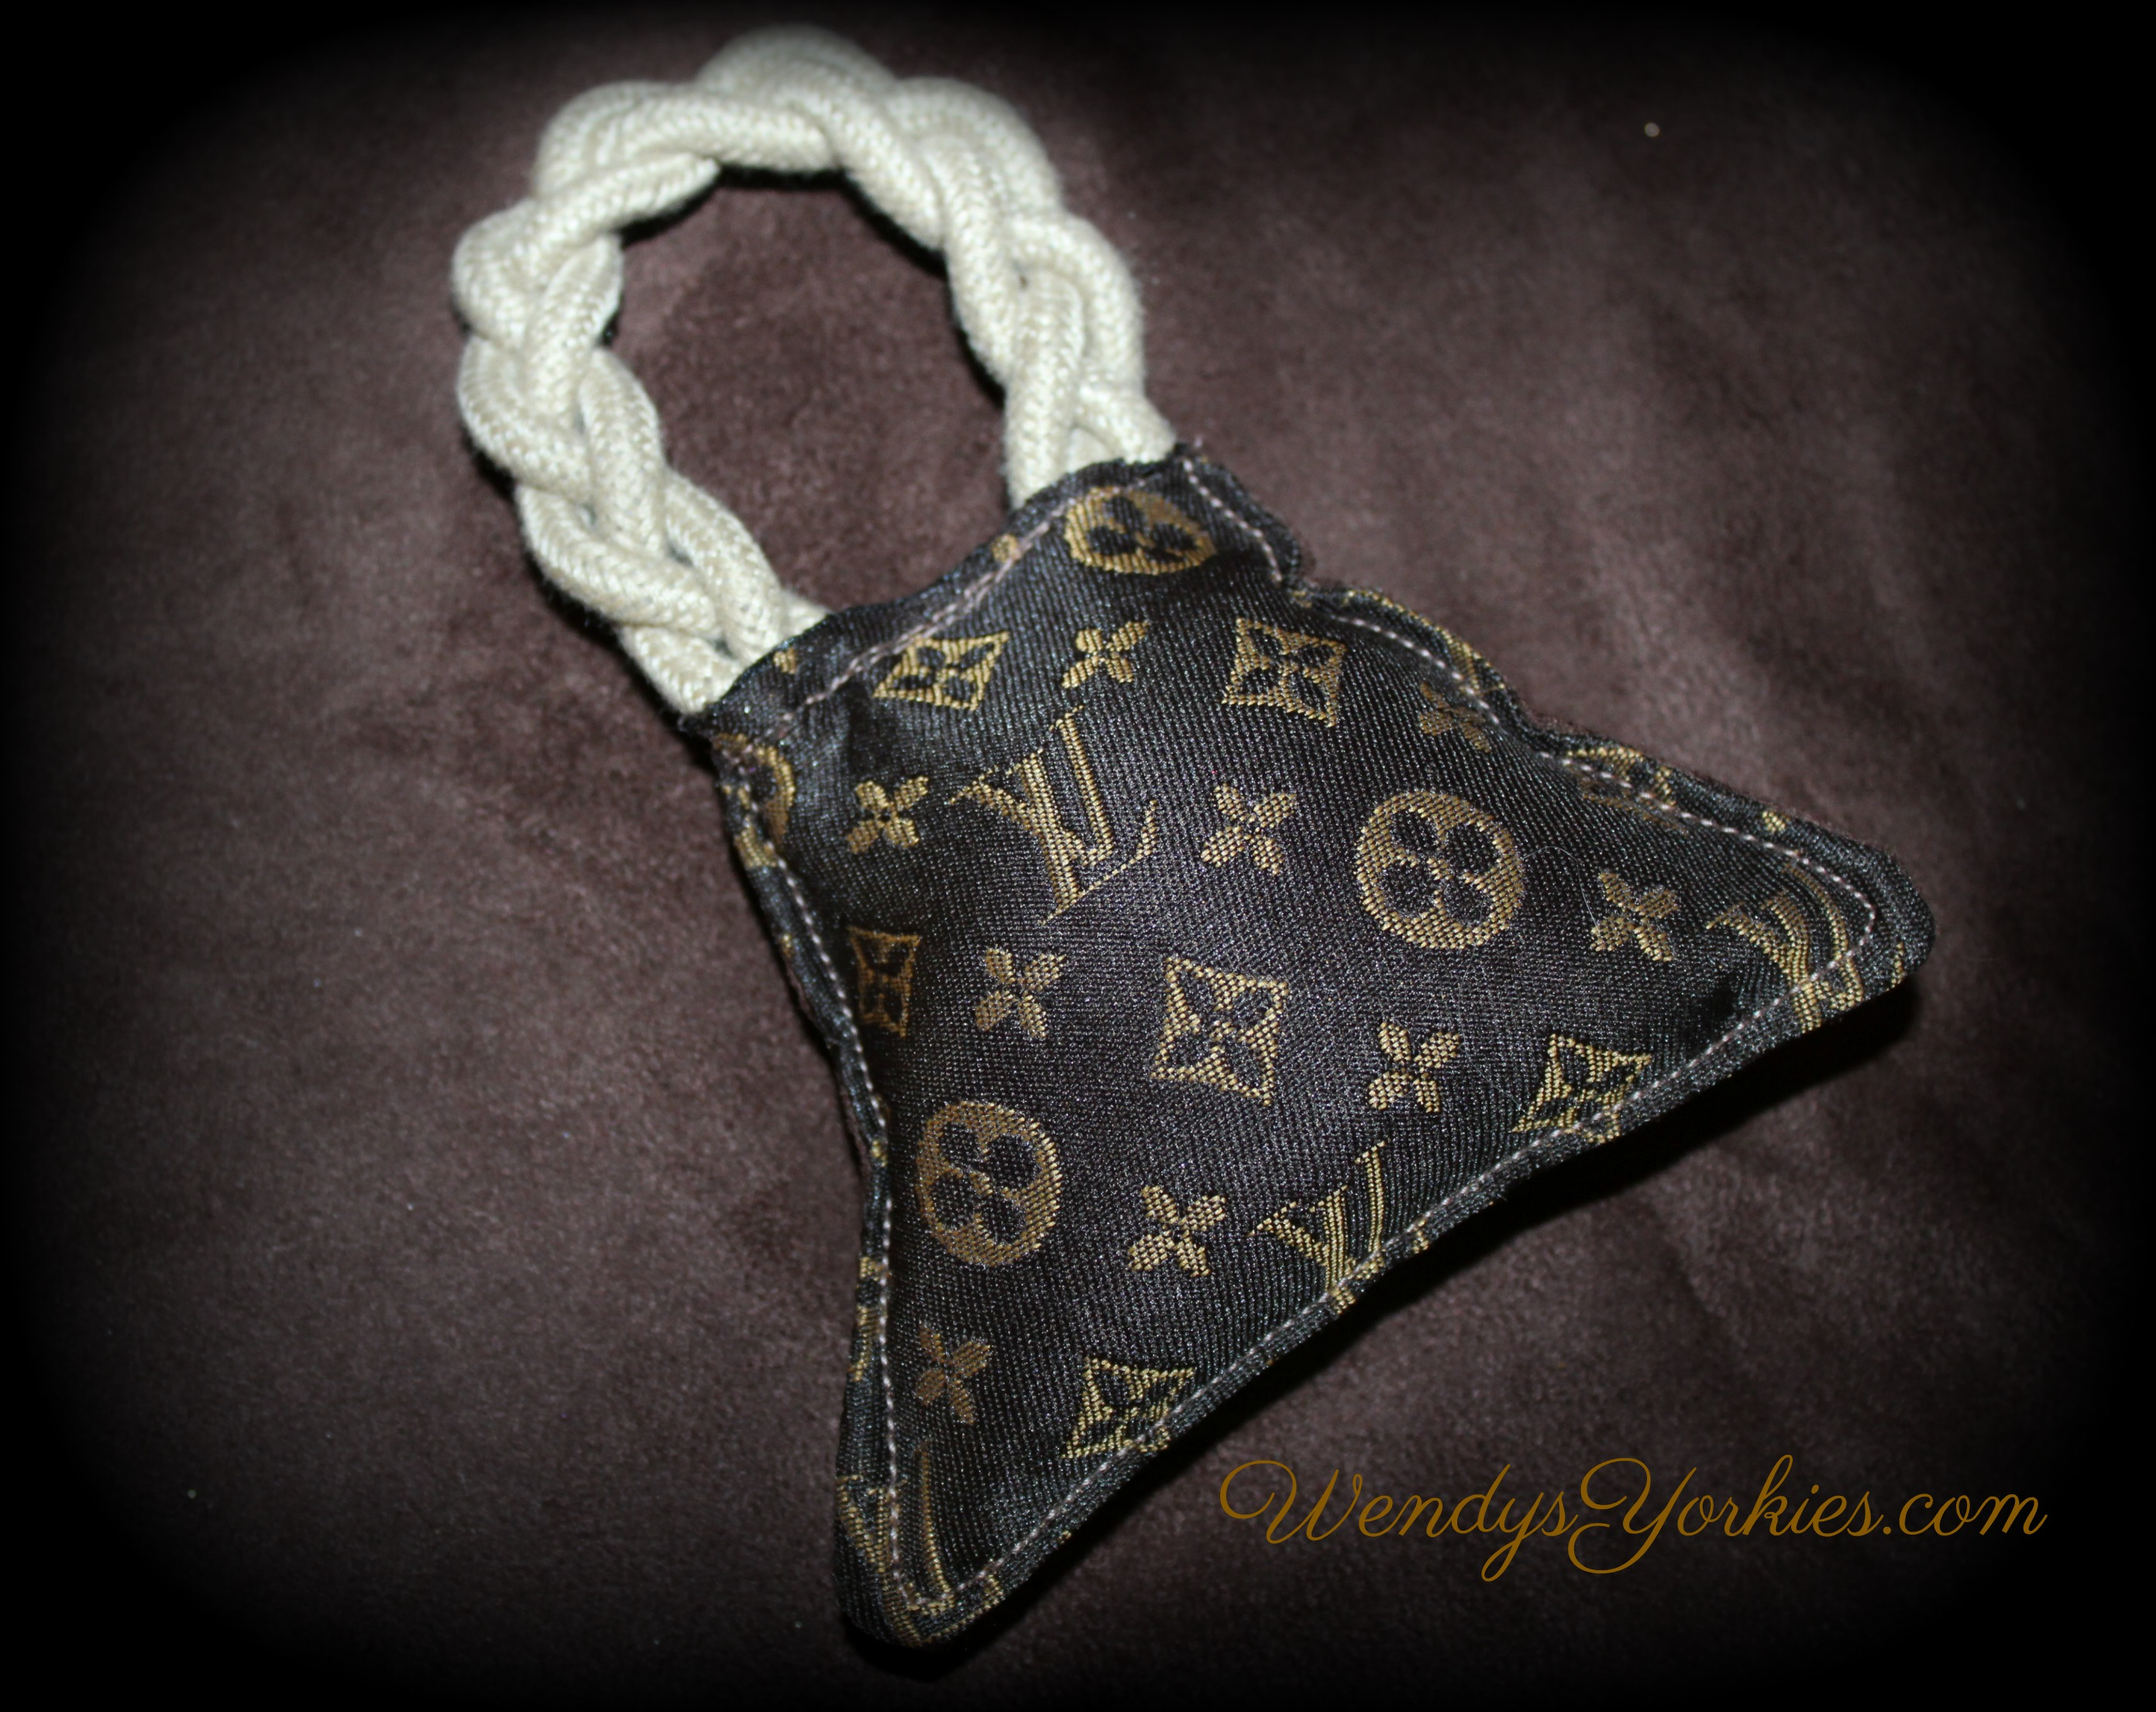 LV Dog purse toy, WendysYorkies.com